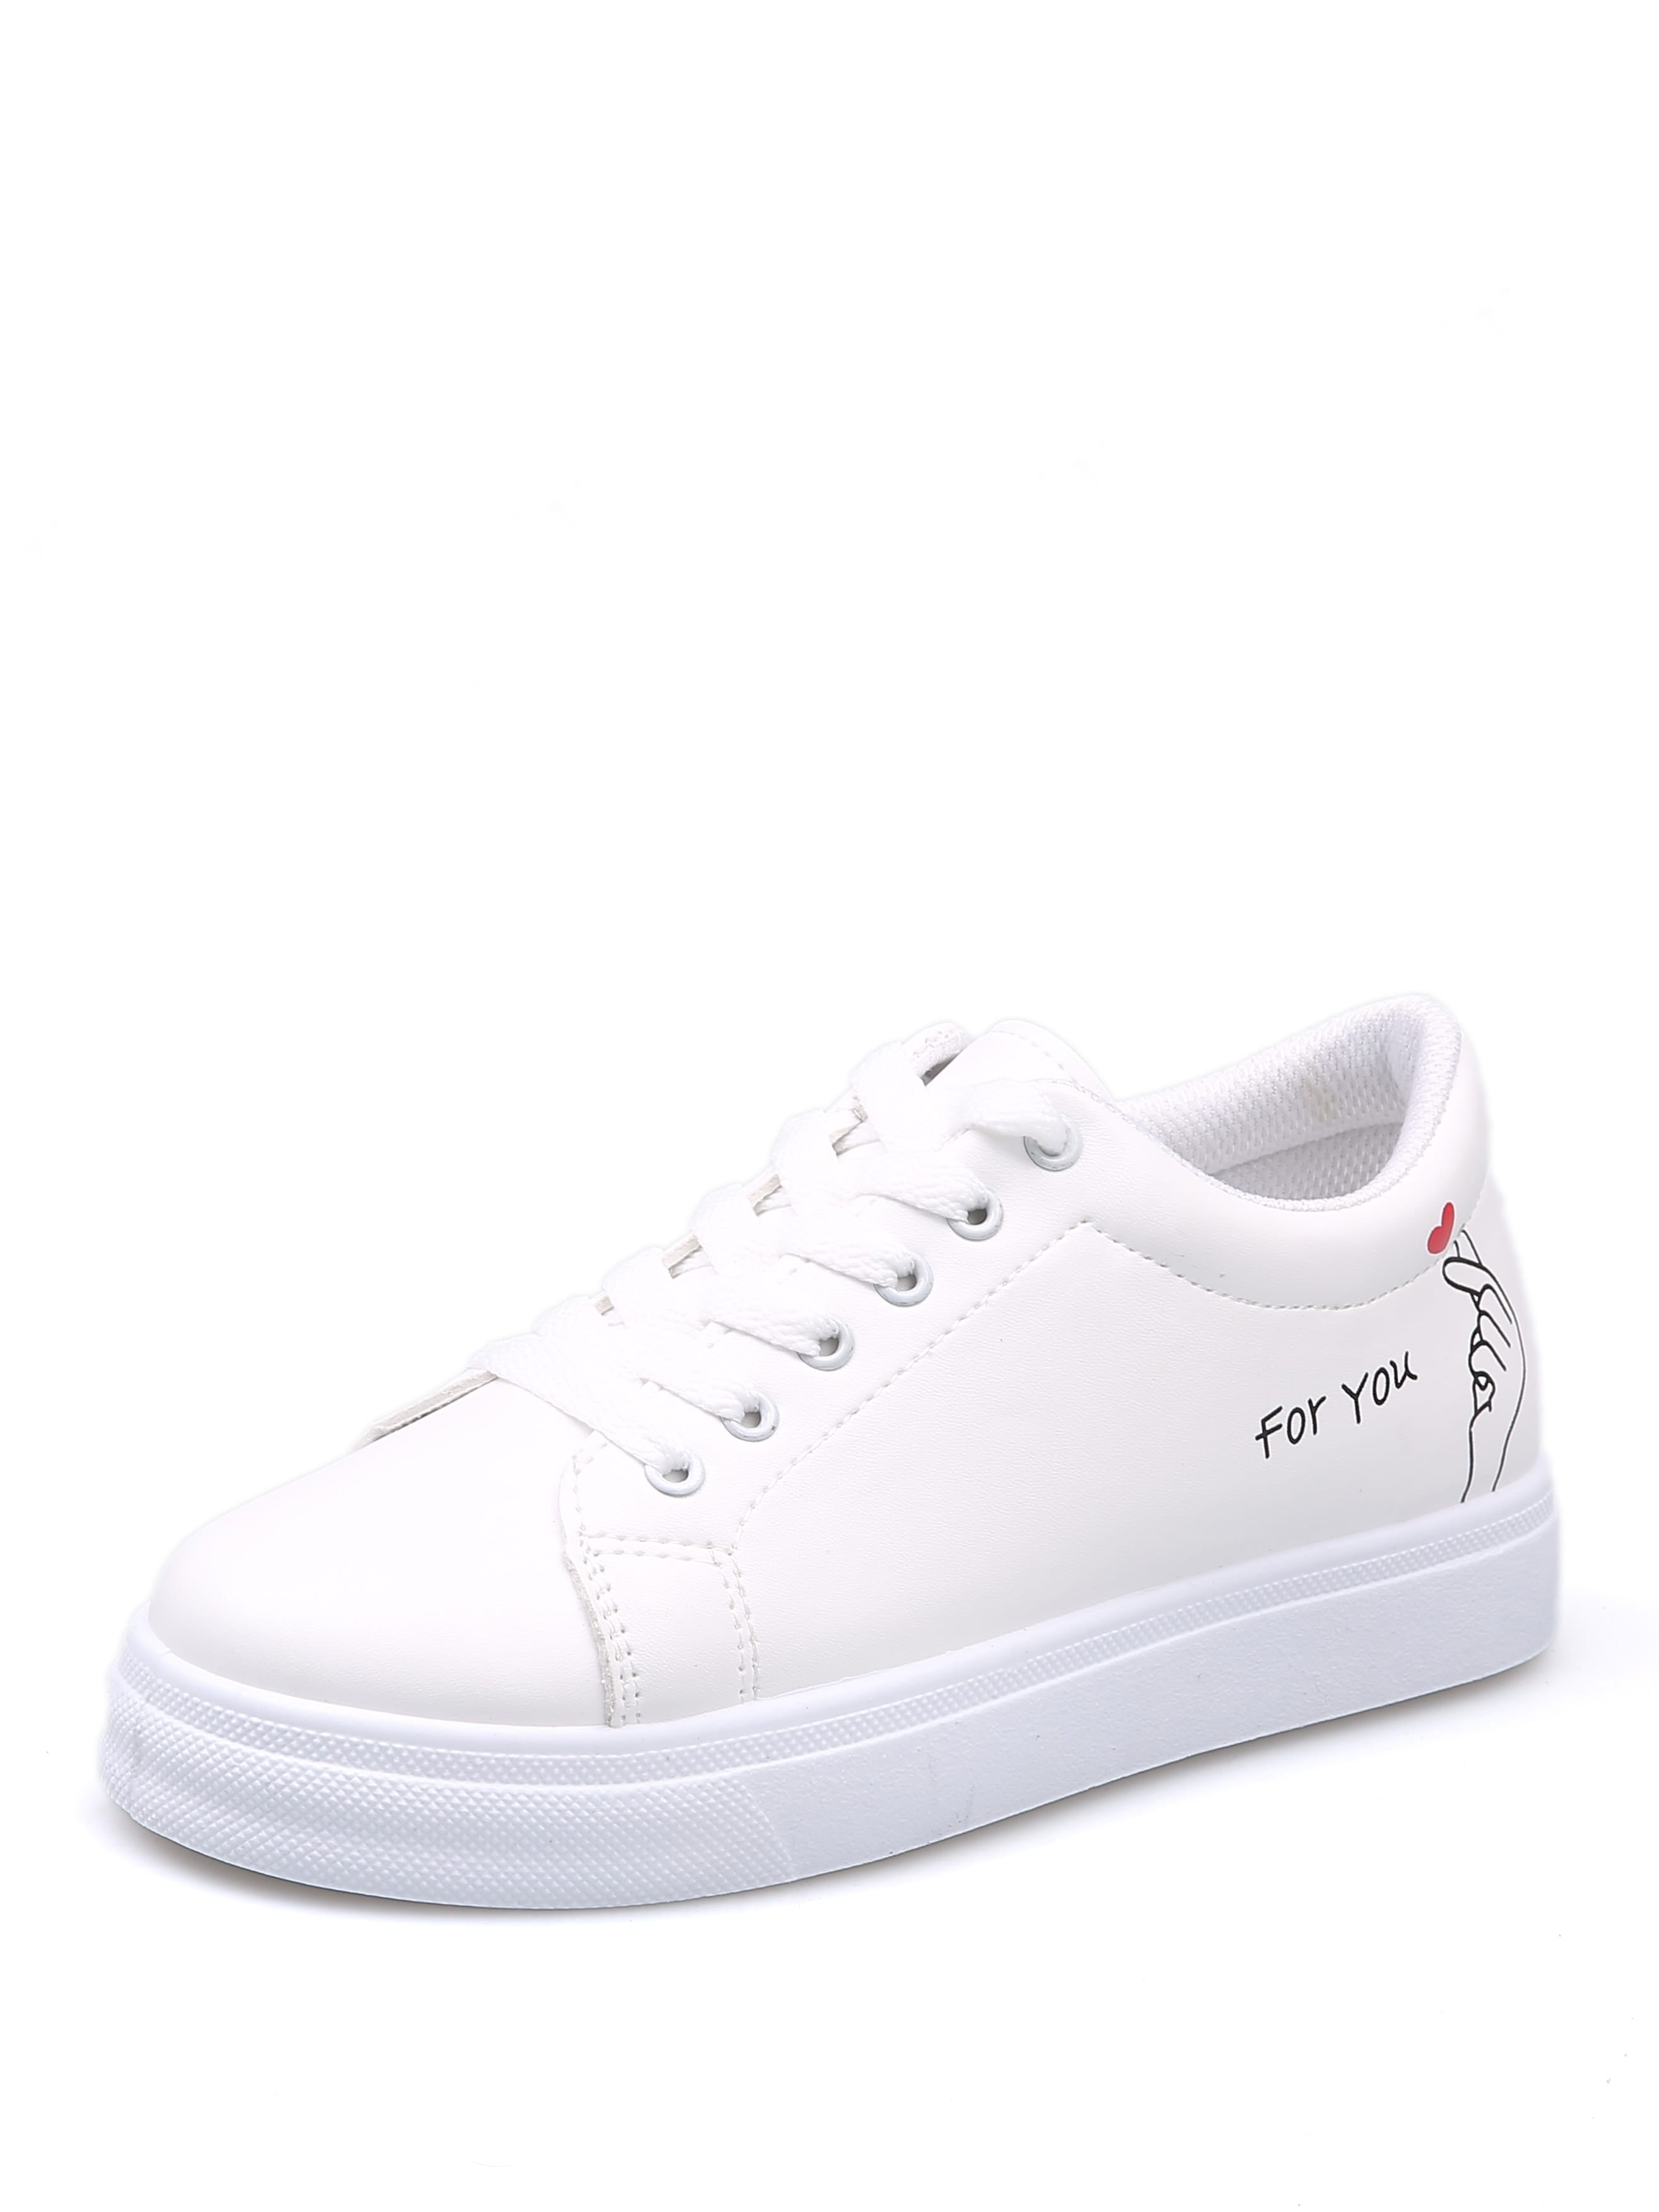 99712fb4f66 Cartoon Lace Up Sneakers EmmaCloth-Women Fast Fashion Online